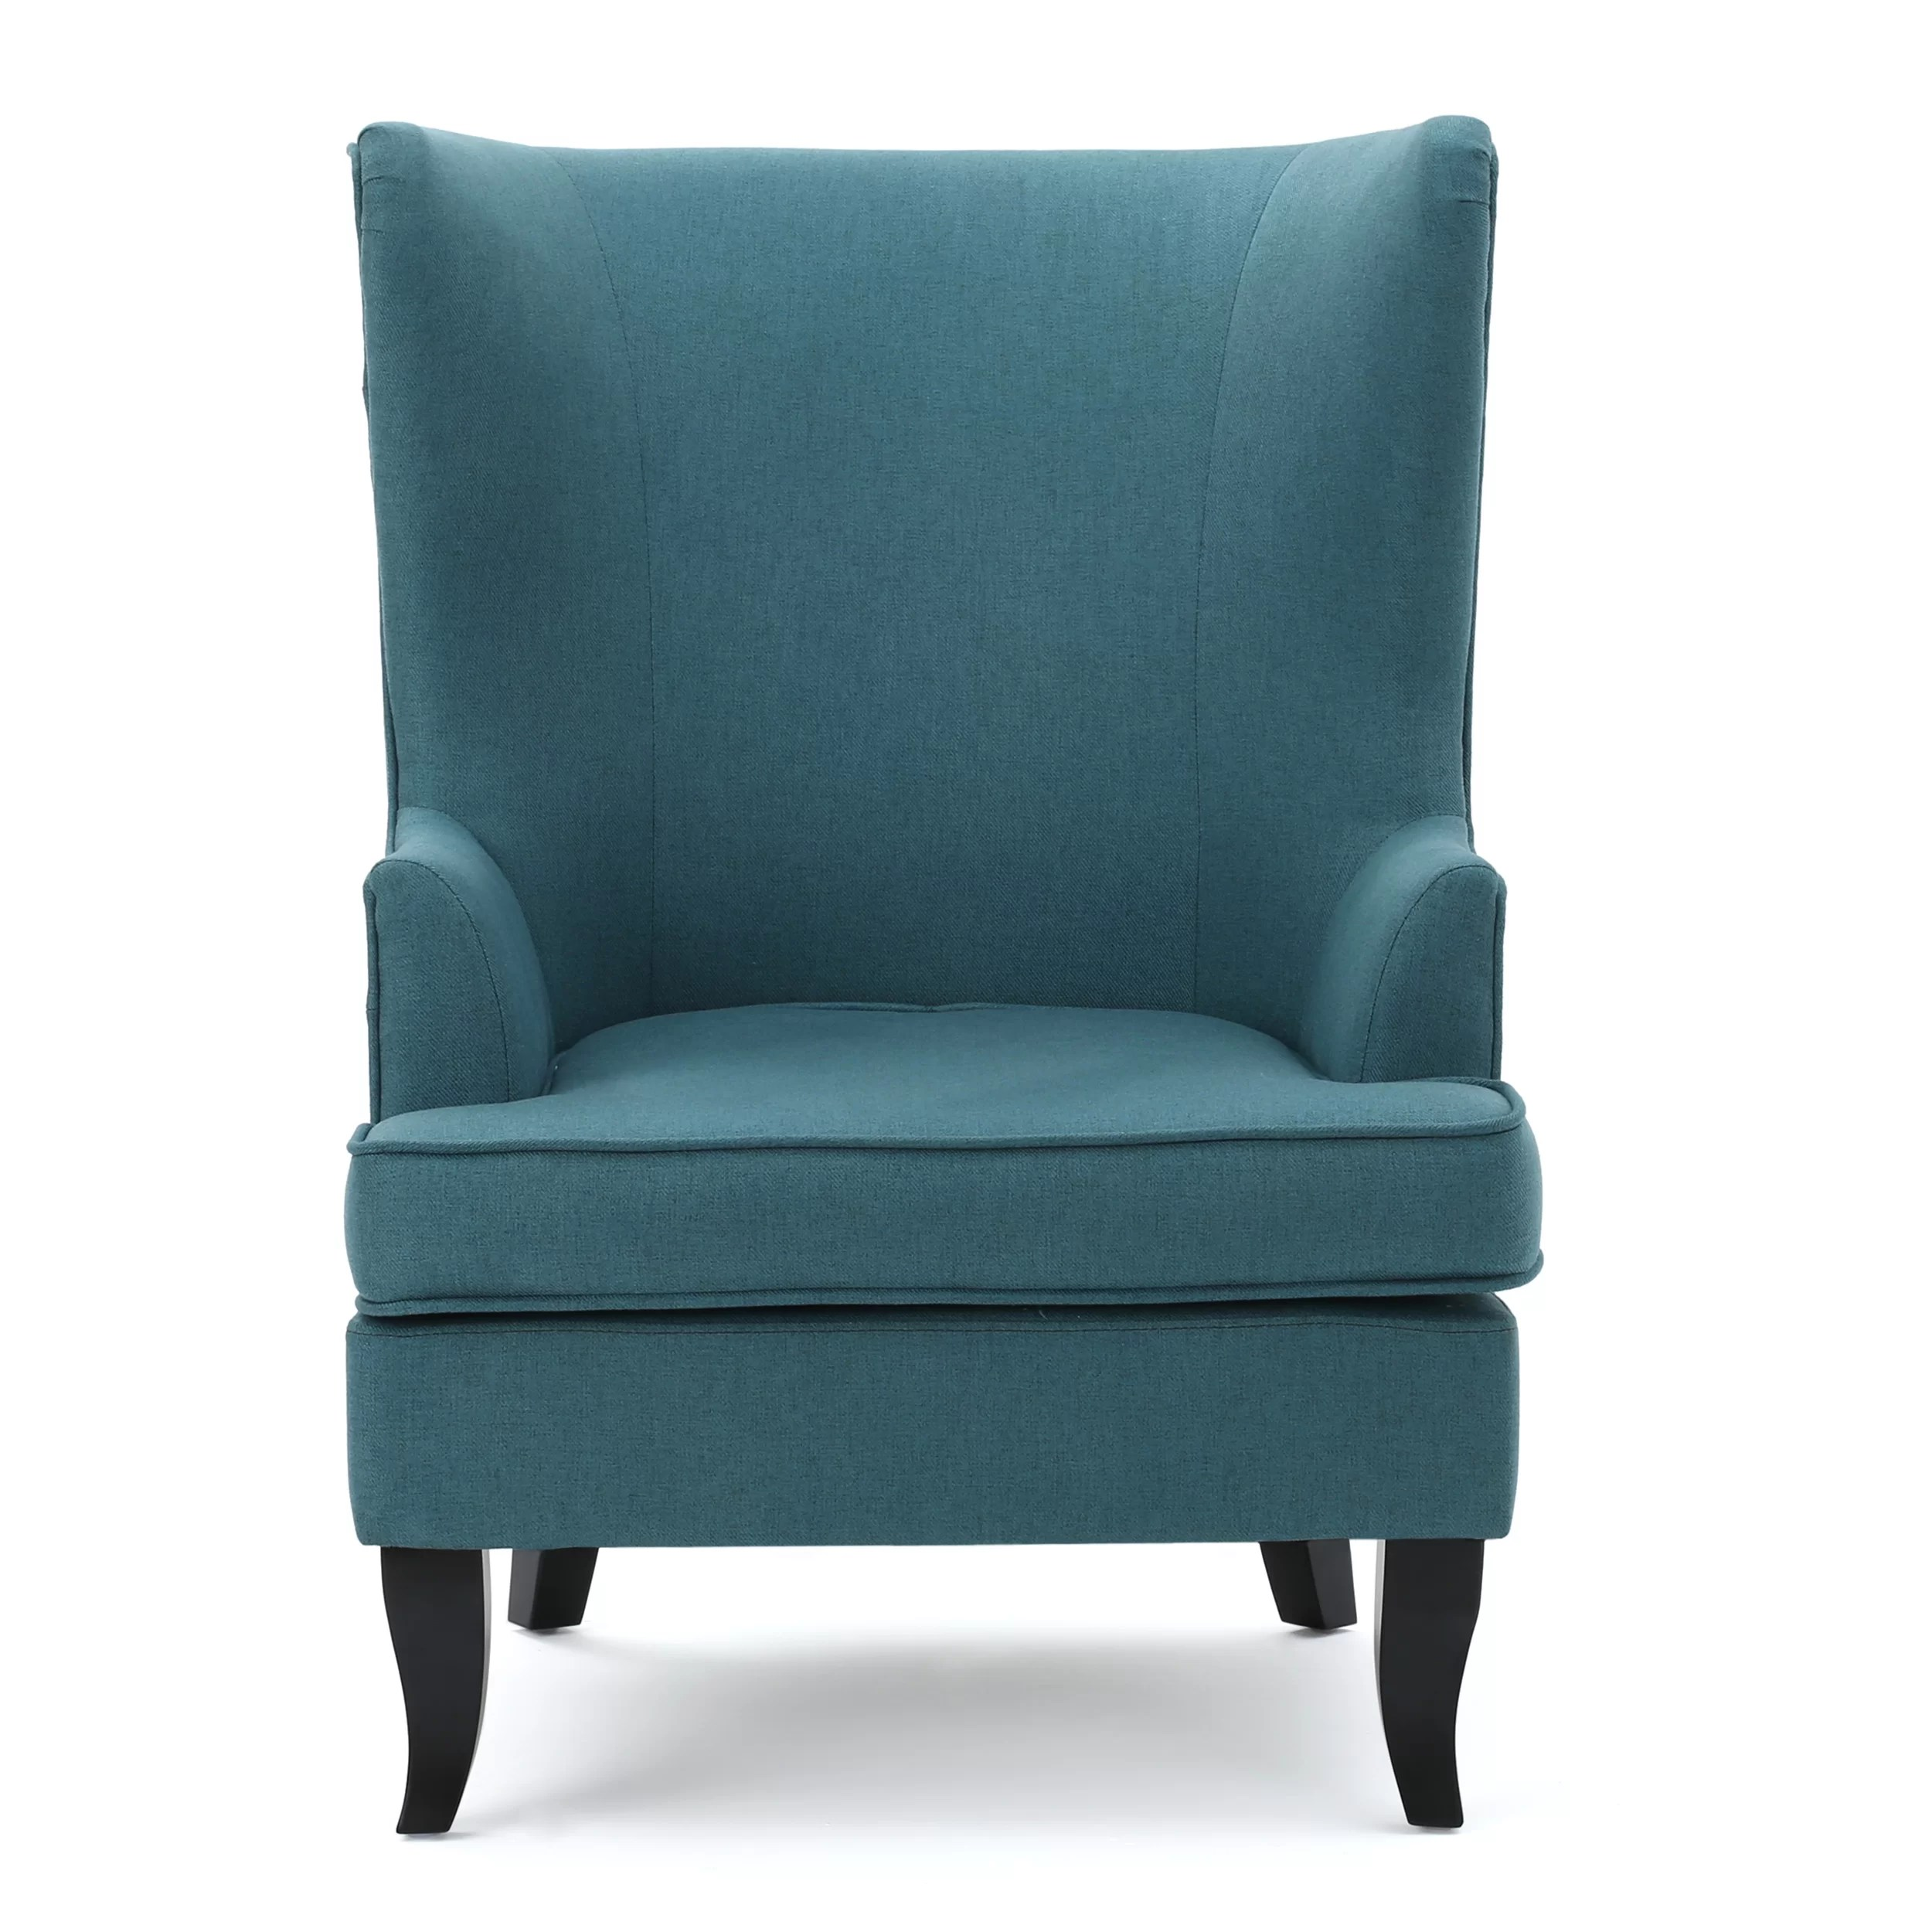 Teal Wingback Chair Daughtrey Wingback Chair